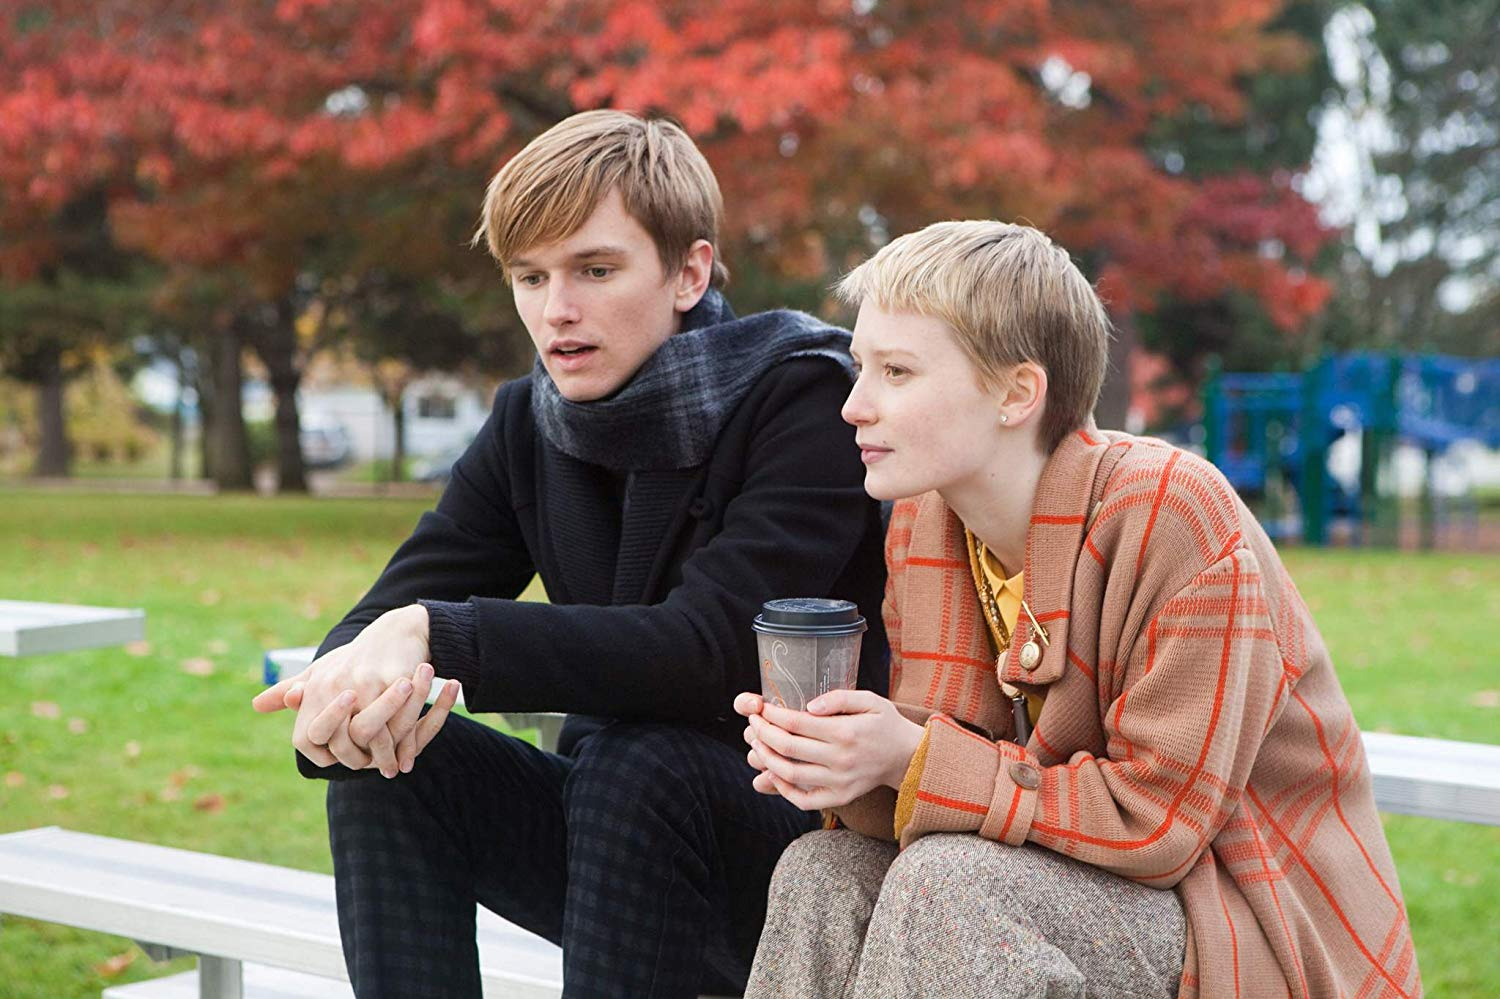 Oddball romance between alienated teenager Enoch Broe (Henry Hopper) and Annabel Cotton (Mia Wasikowska) who is dying of brain cancer in Restless (2011)